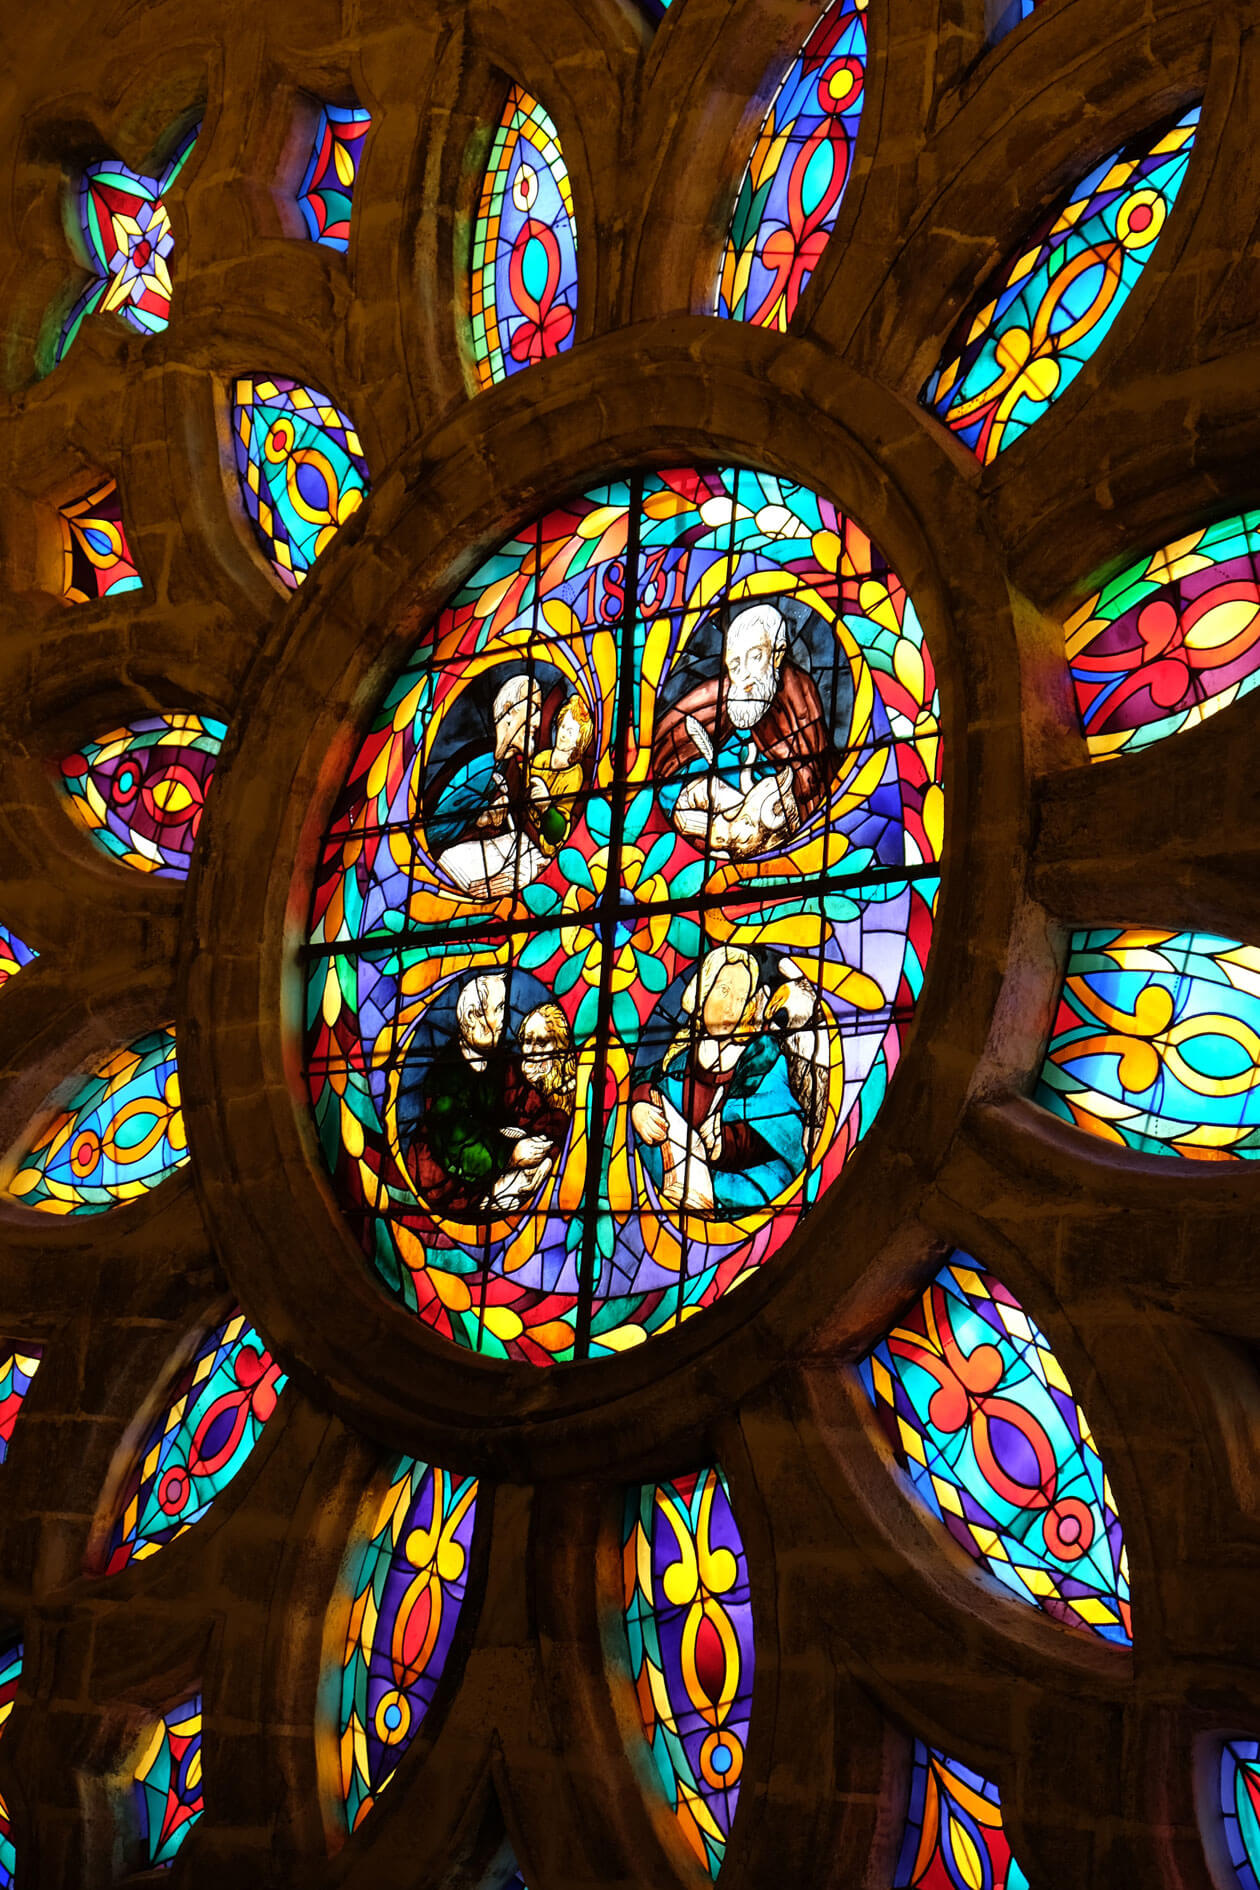 The huge and beautiful stained glass window was incredibly vivid close up